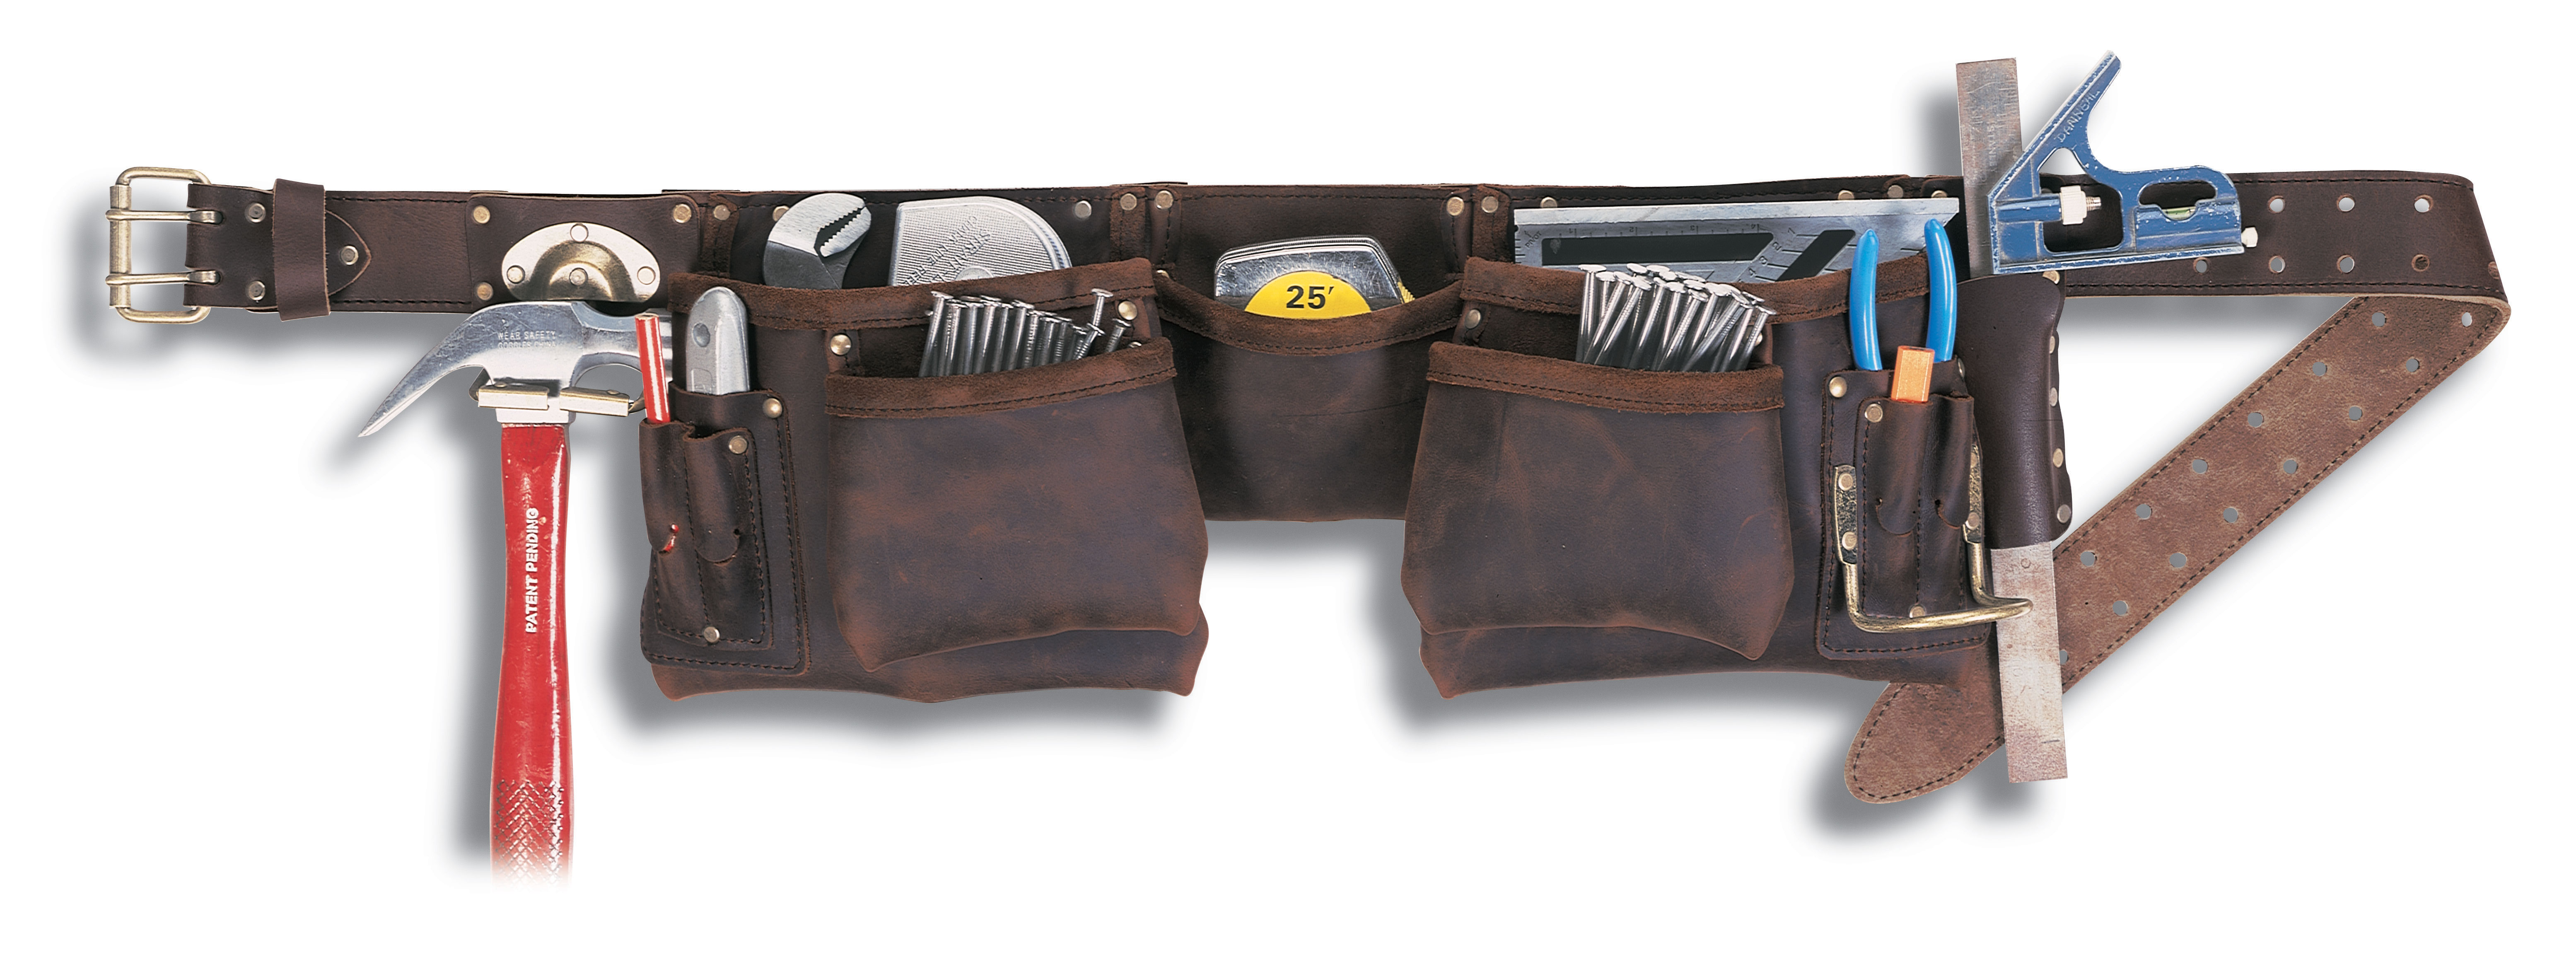 Hand Tools Bags Belts Amp Boxes Tool Belts Amp Accessories